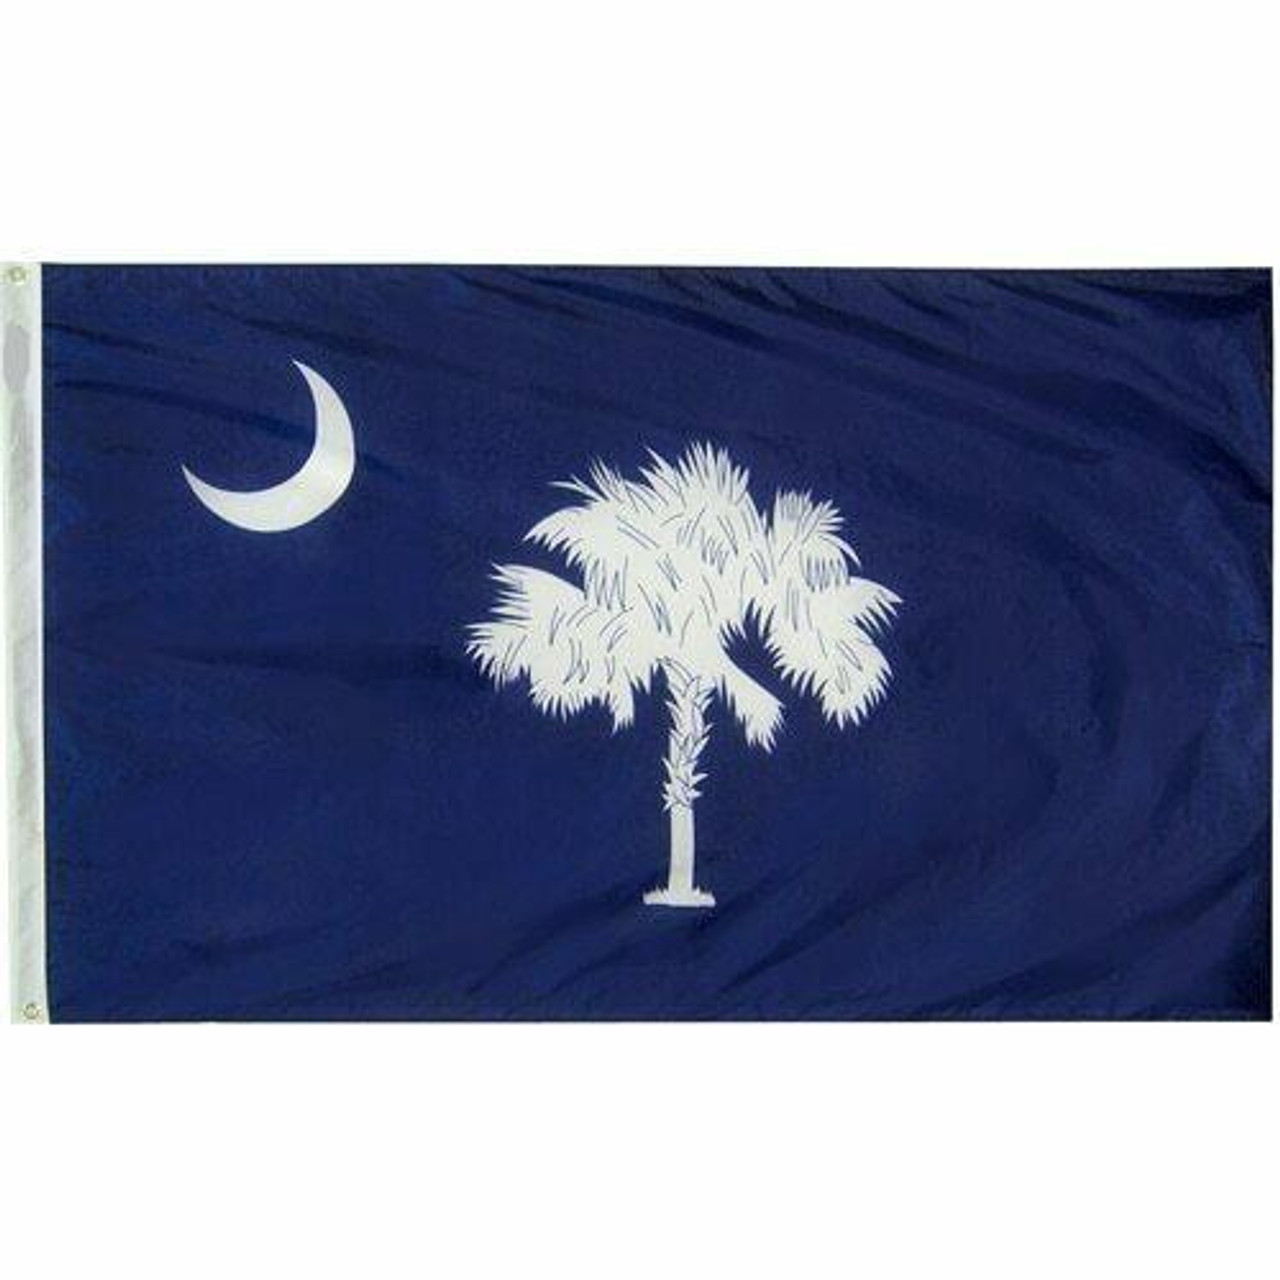 The South Carolina flag consists of a navy blue background with a white palmetto tree in its center and a small white crescent in its top left corner. On the left side of the flag is a durable canvas header with brass grommets for easy attachment to flagpoles.